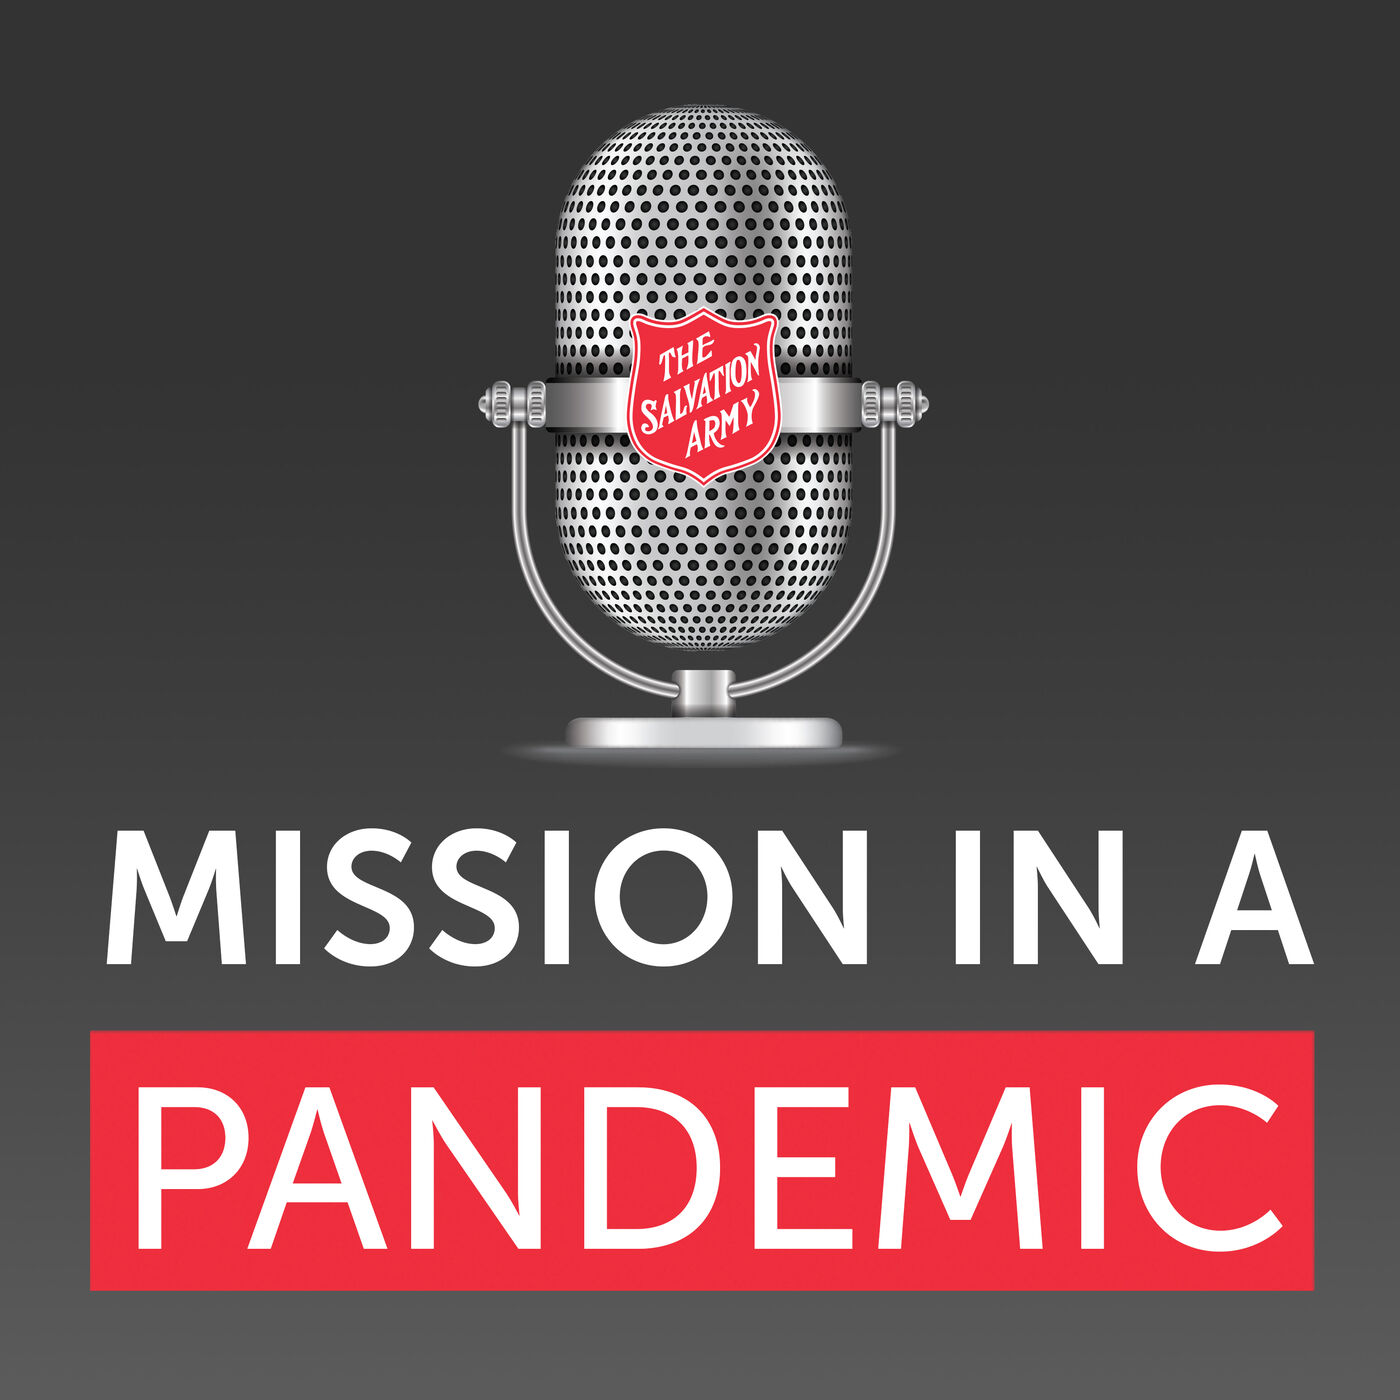 Generous Living in a Pandemic